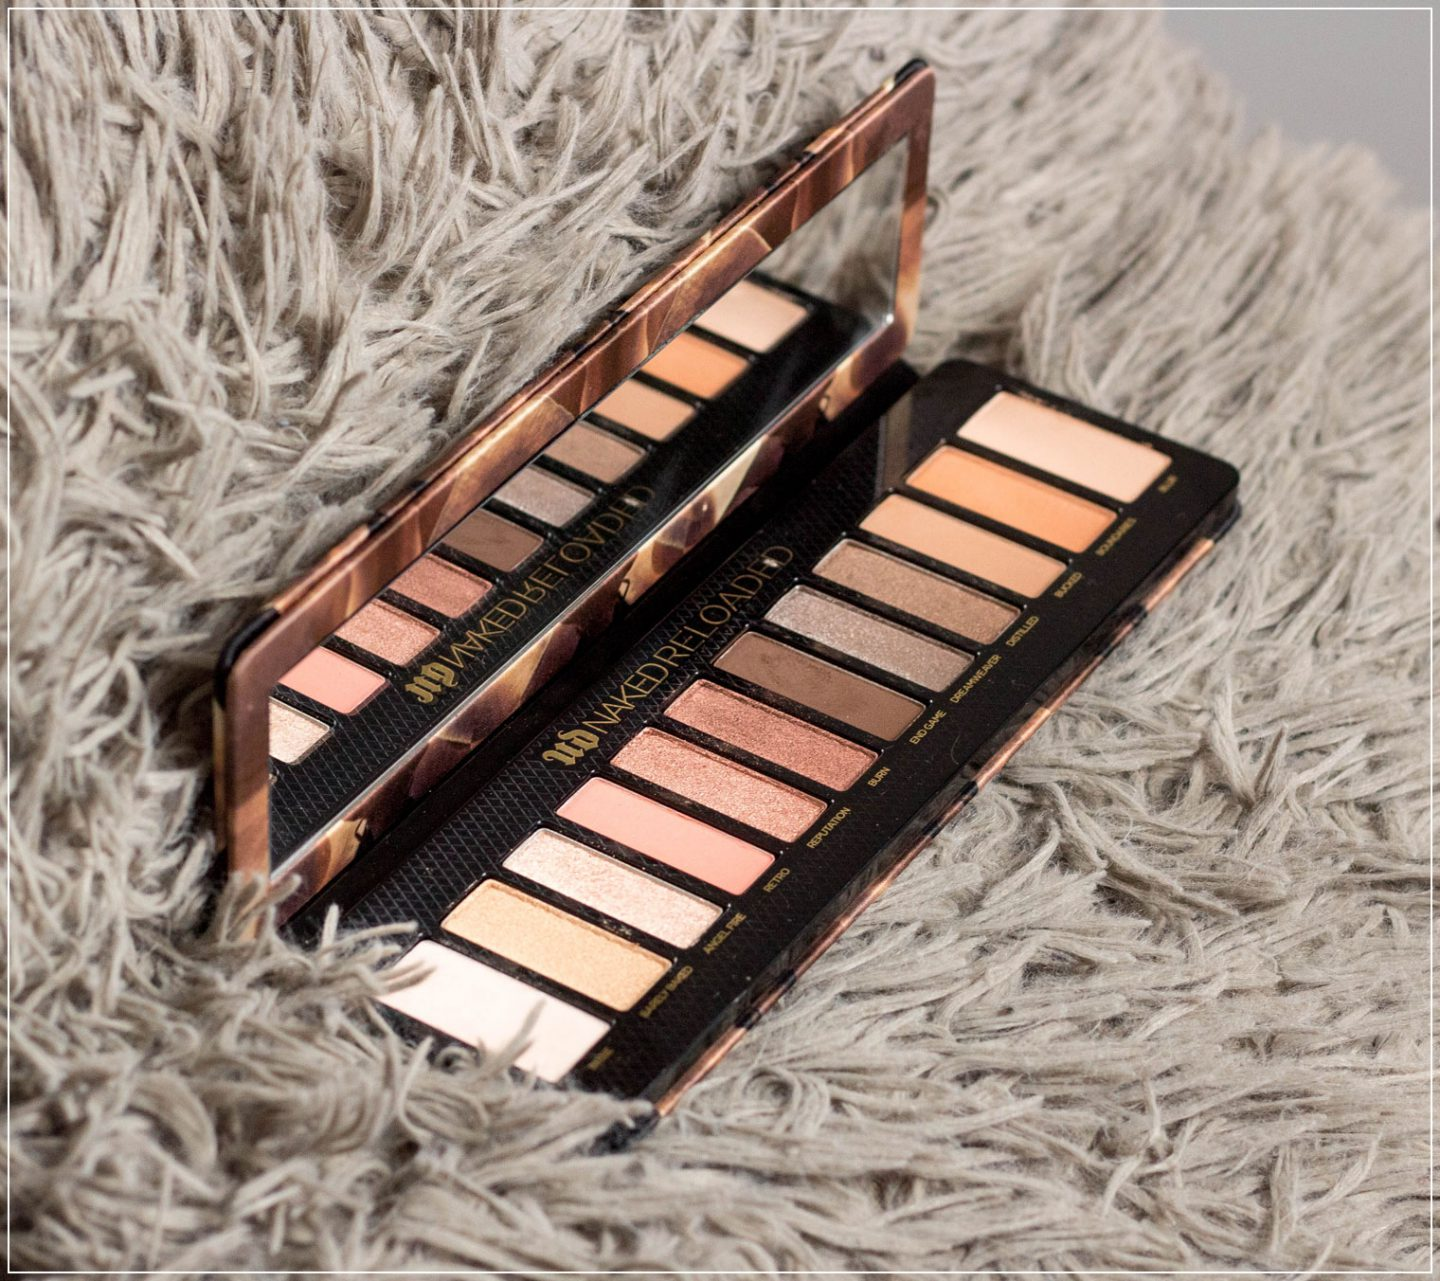 Naked Reloaded Review, Naked Reloaded, Tages-Make-Up, Lidschatten-Palette Beautytutorial, Make-up Tutorial, Beauty Blog, Beautybloggerin, Ruhrgebiet